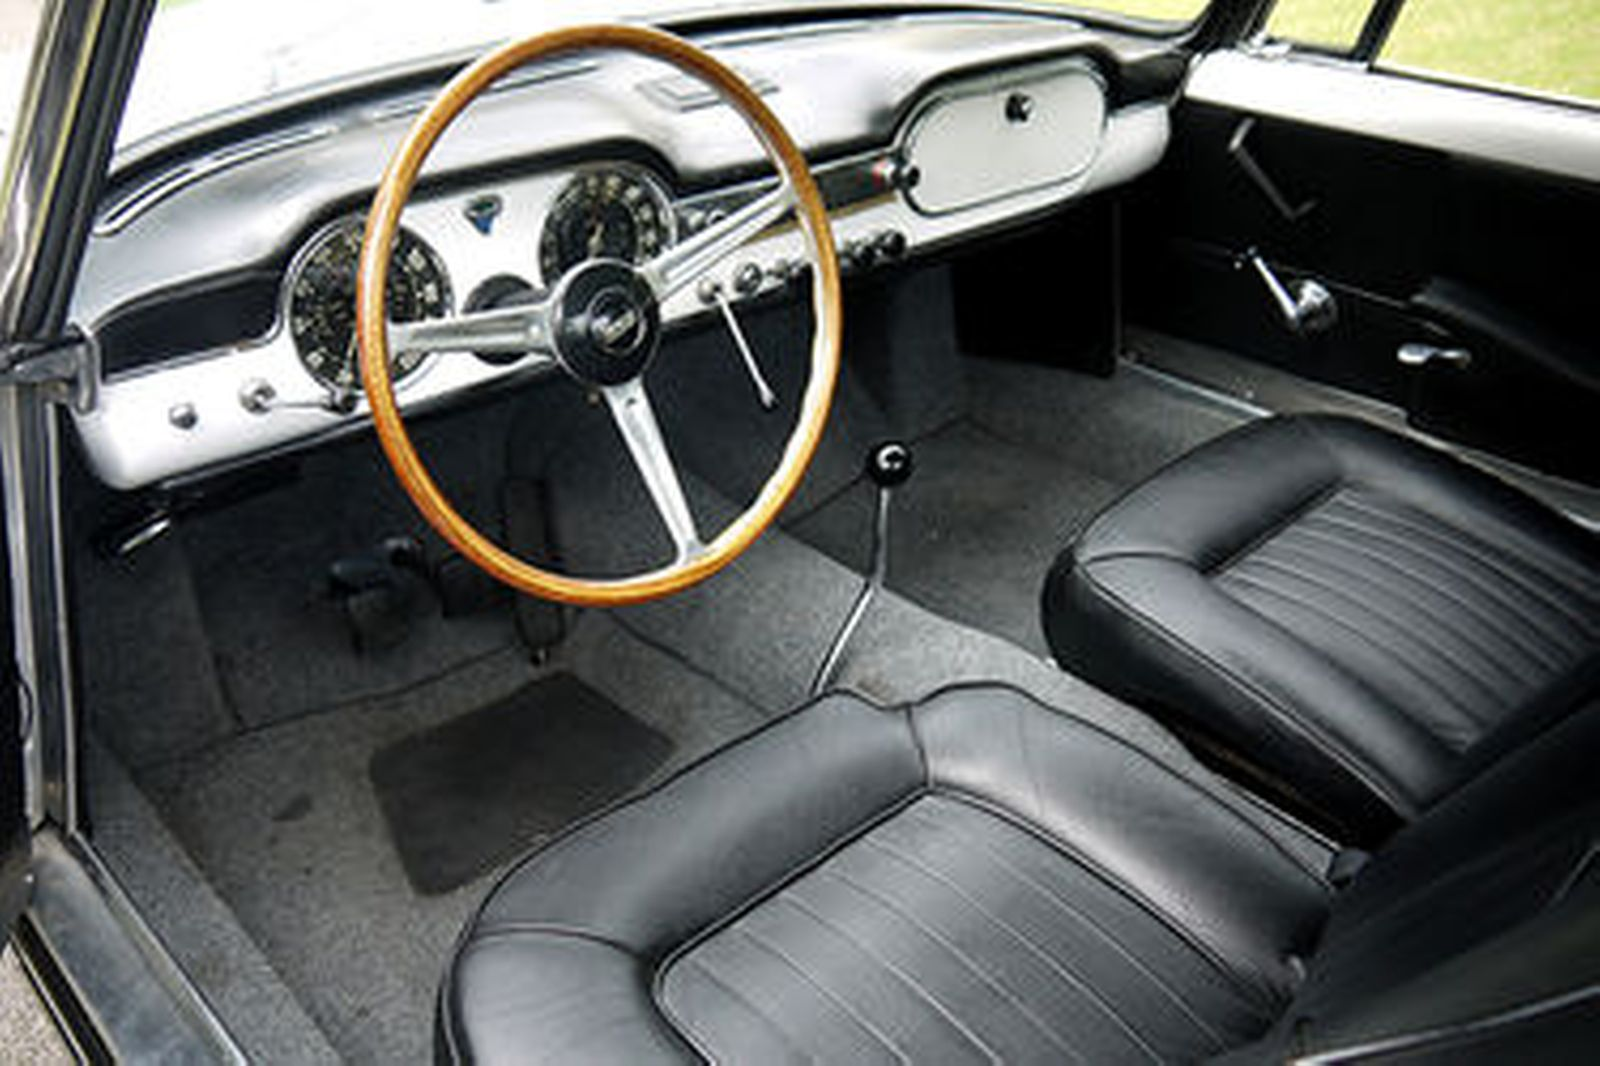 https://www.shannons.com.au/library/images/auctions/I6H2D2X1Y6U2Z4G3/1600x1066/1963-lancia-flaminia-gtl-3c-touring-28l-coupe-lhd.jpg